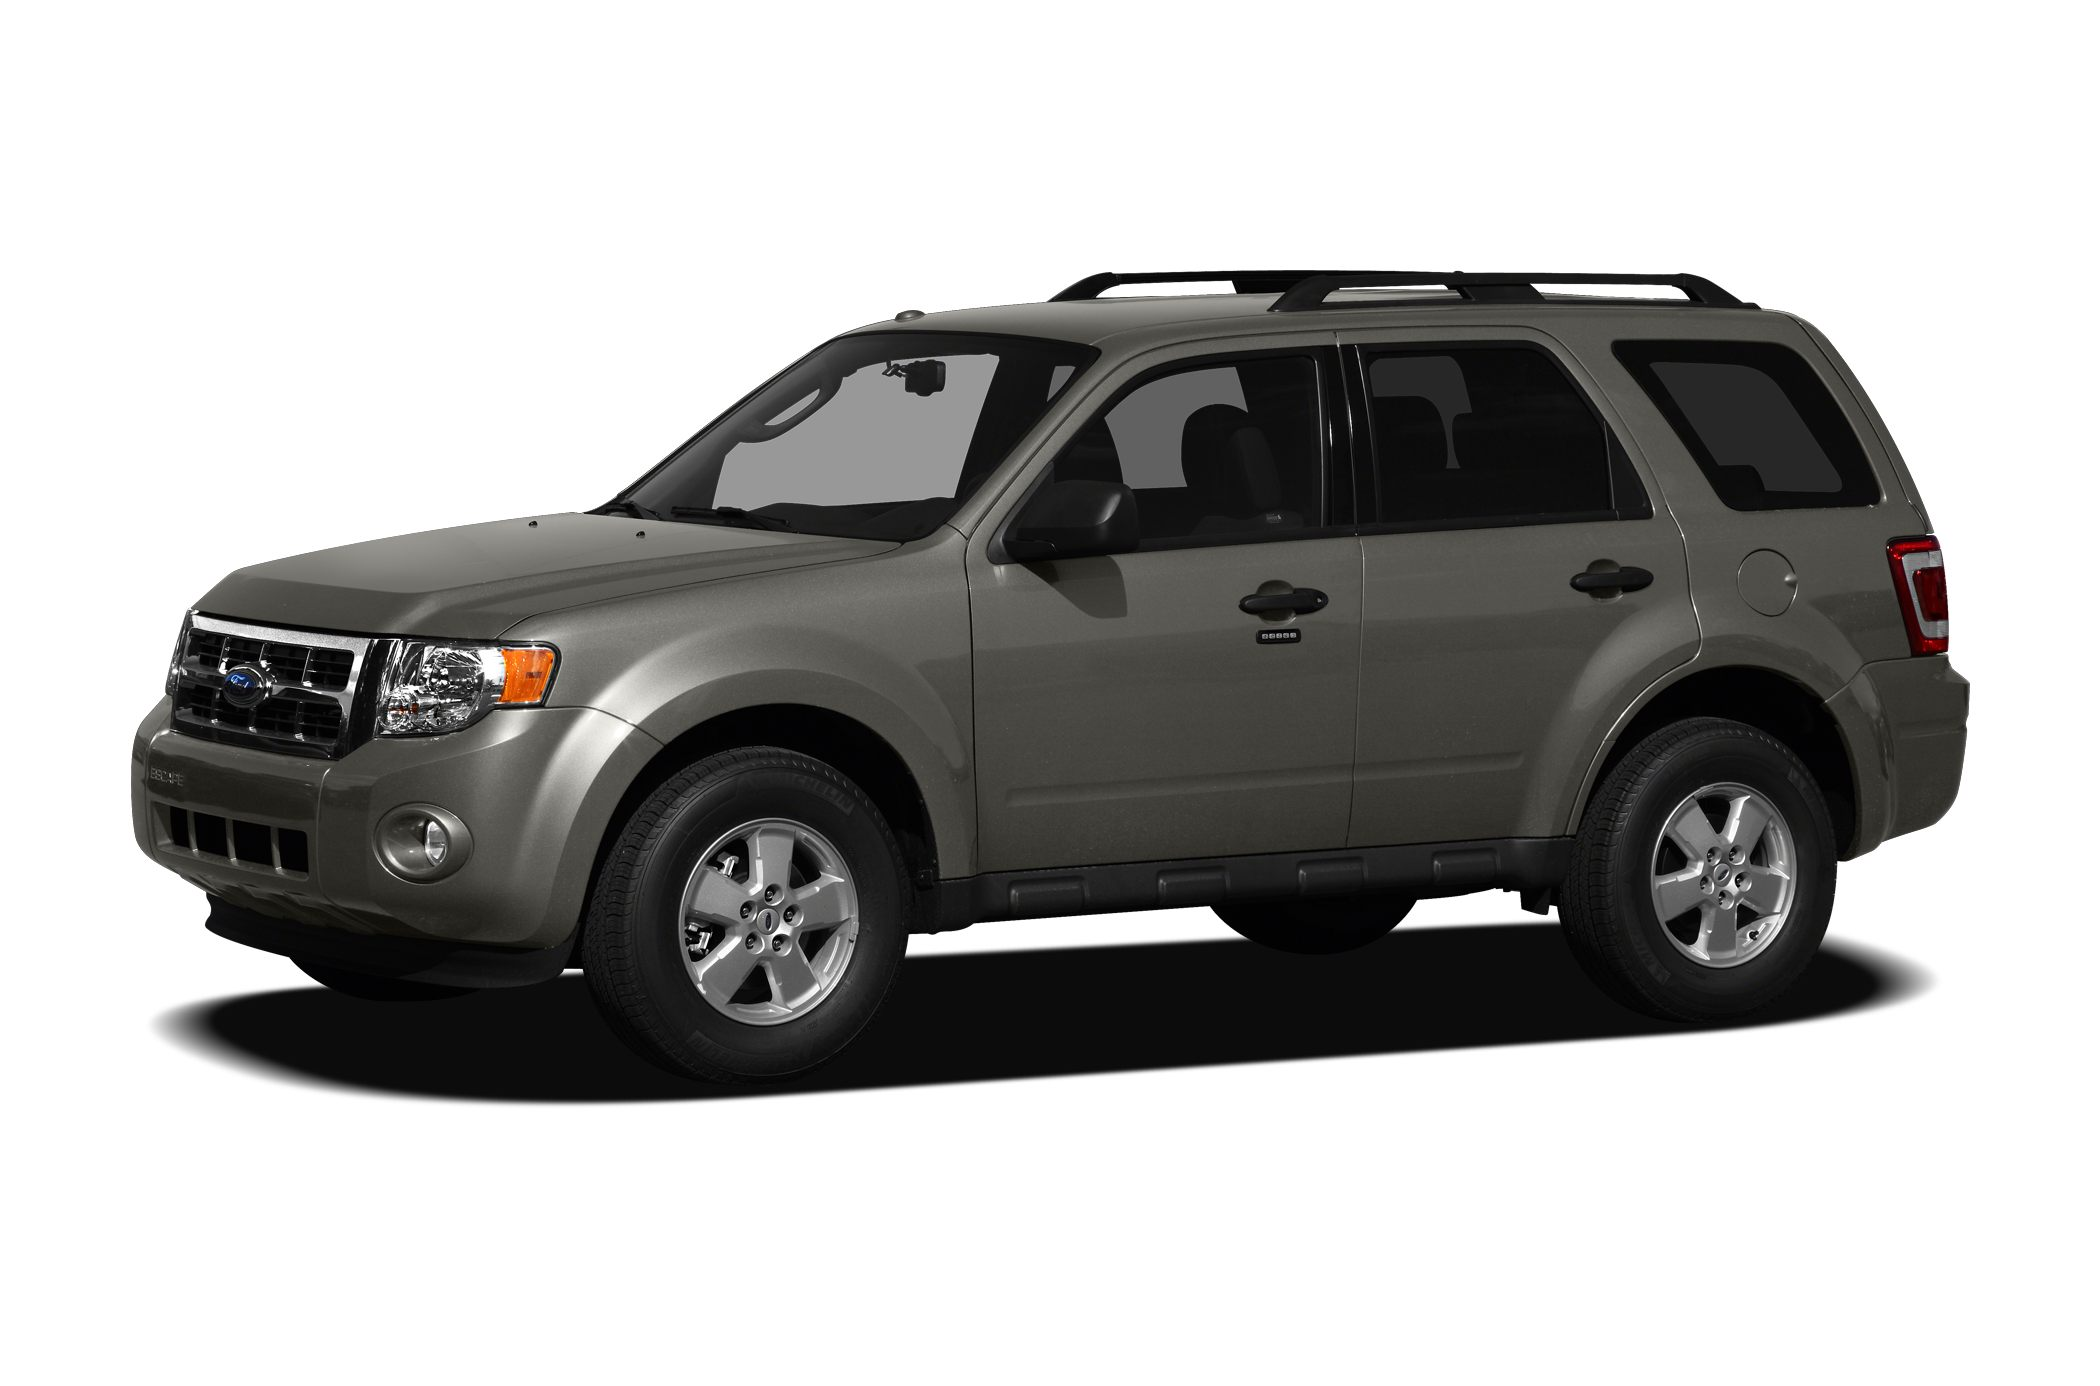 2012 Ford Escape XLT SUV for sale in Ebensburg for $23,000 with 22,171 miles